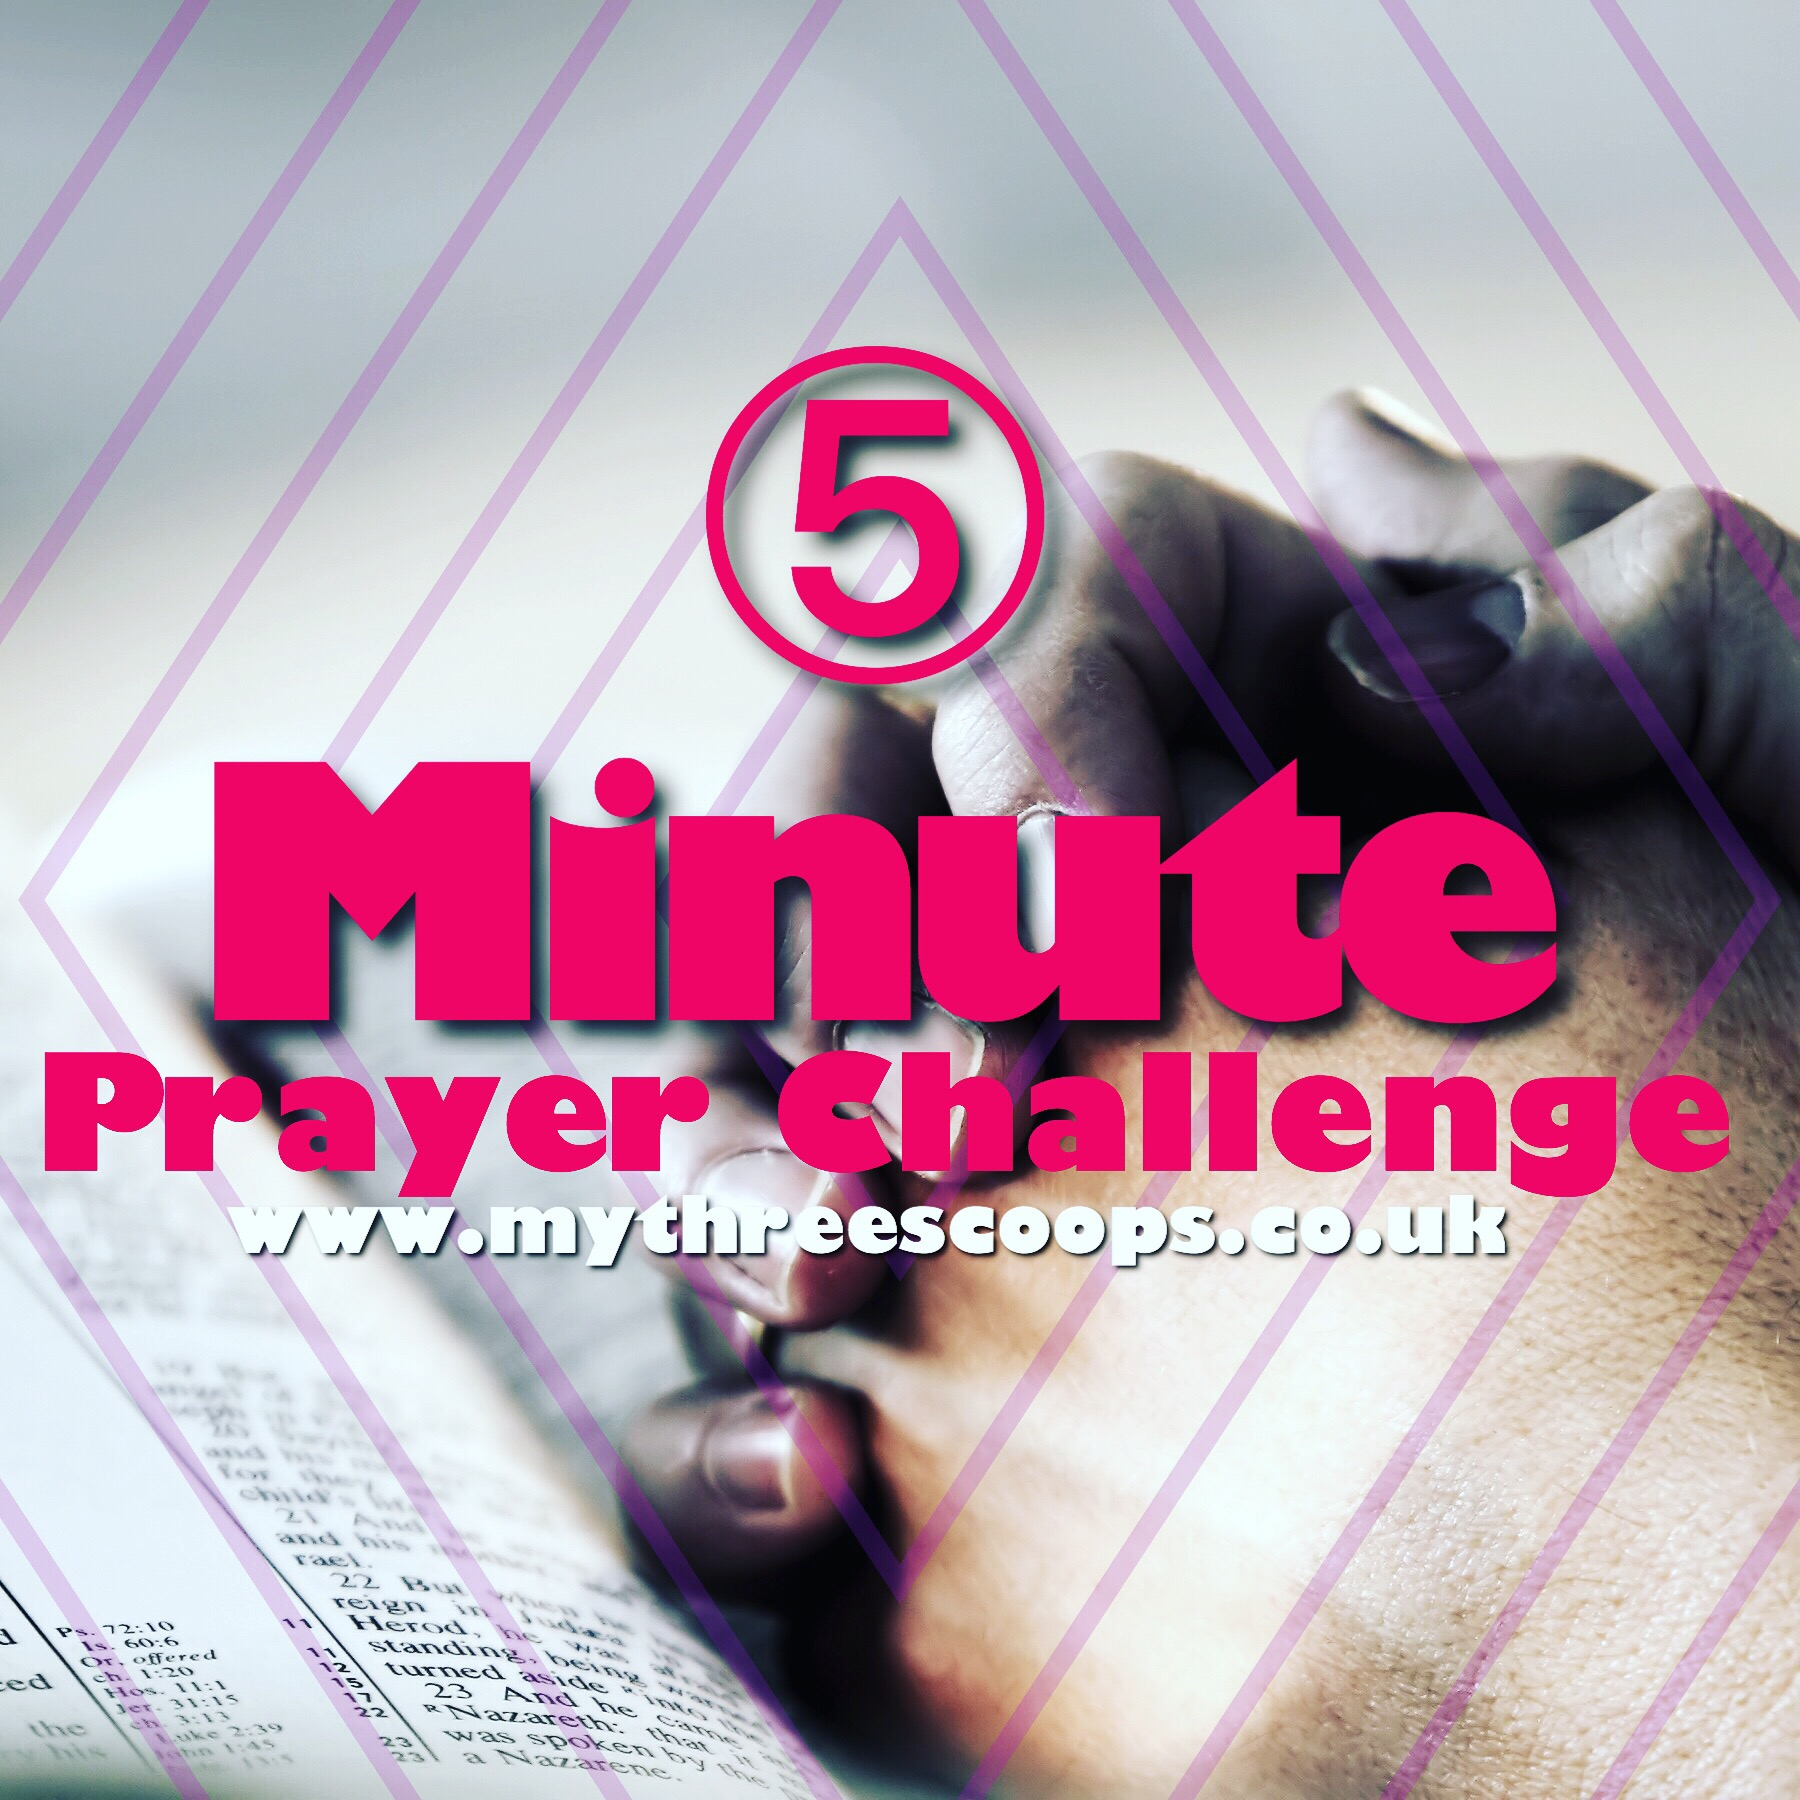 A Few Lessons from my Prayer Challenge